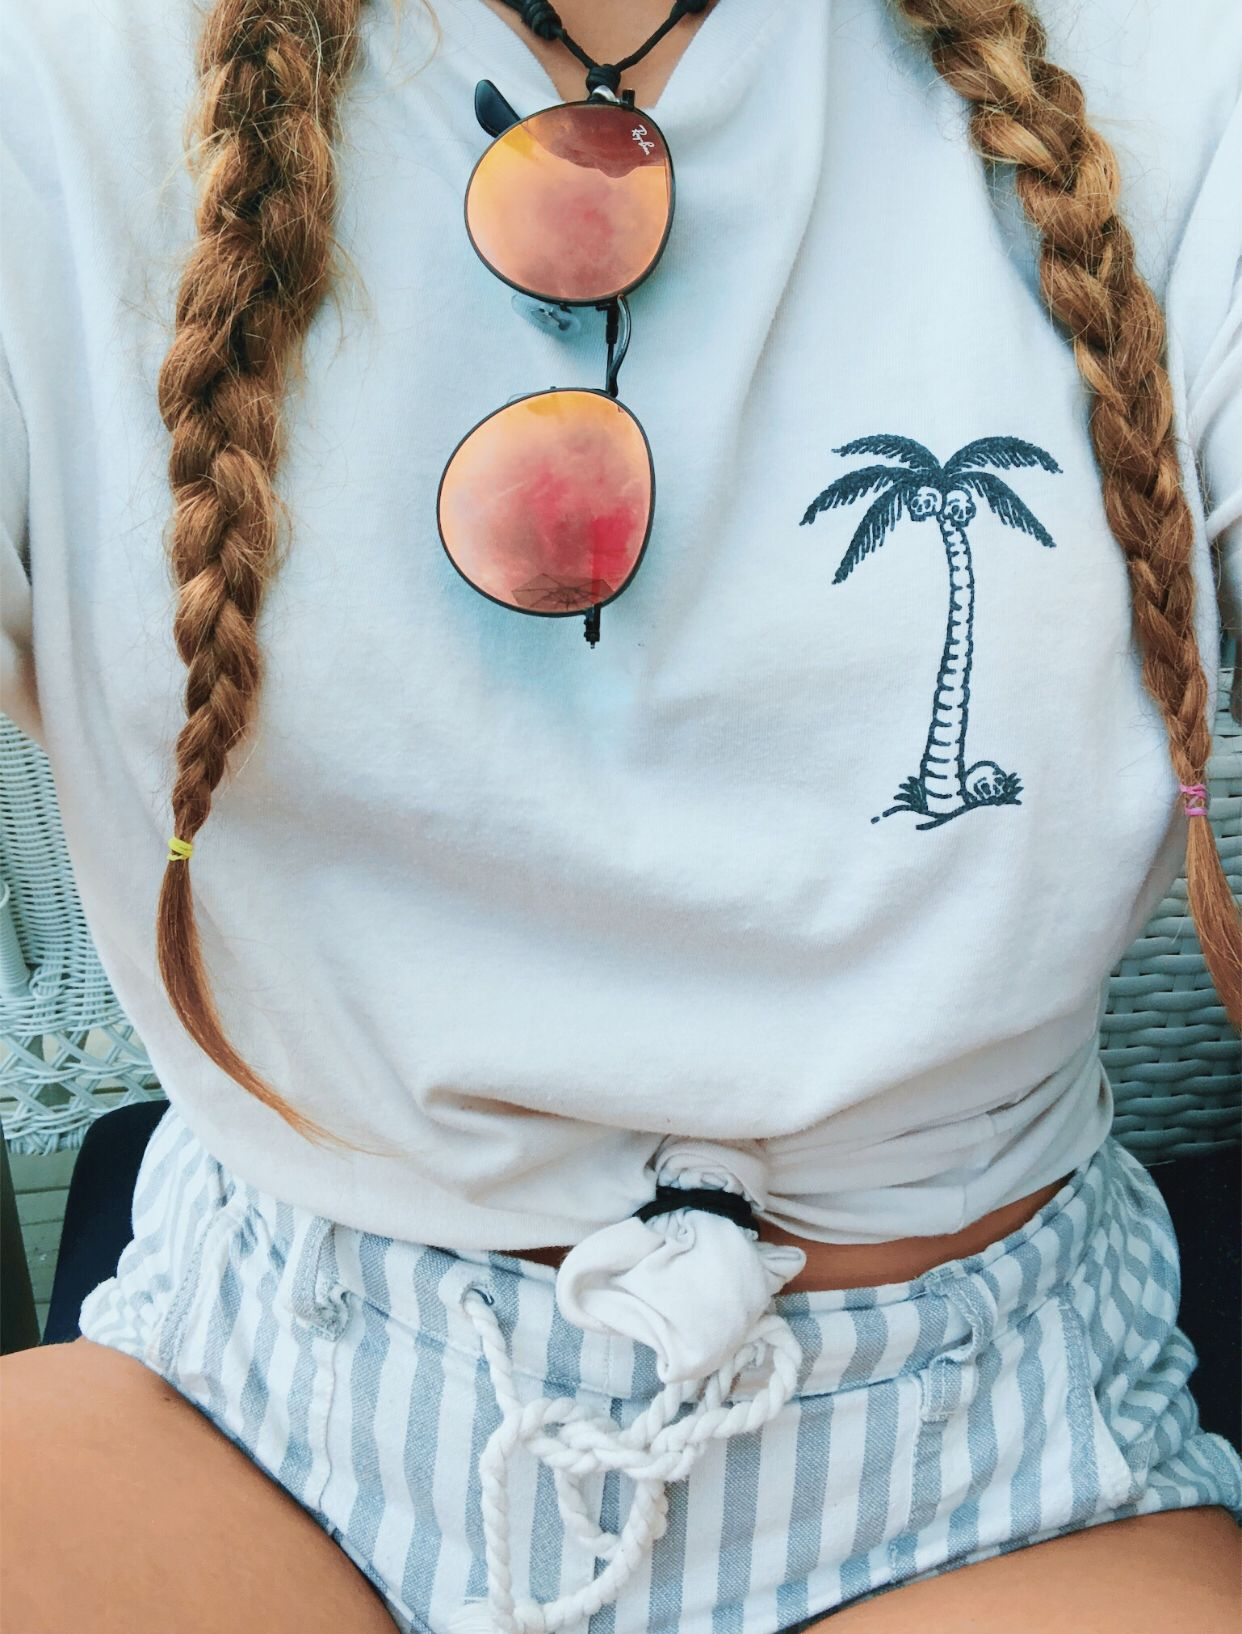 Pinterest Graceesmith5 California Outfits Classy Summer Outfits Summer Outfits For Teens